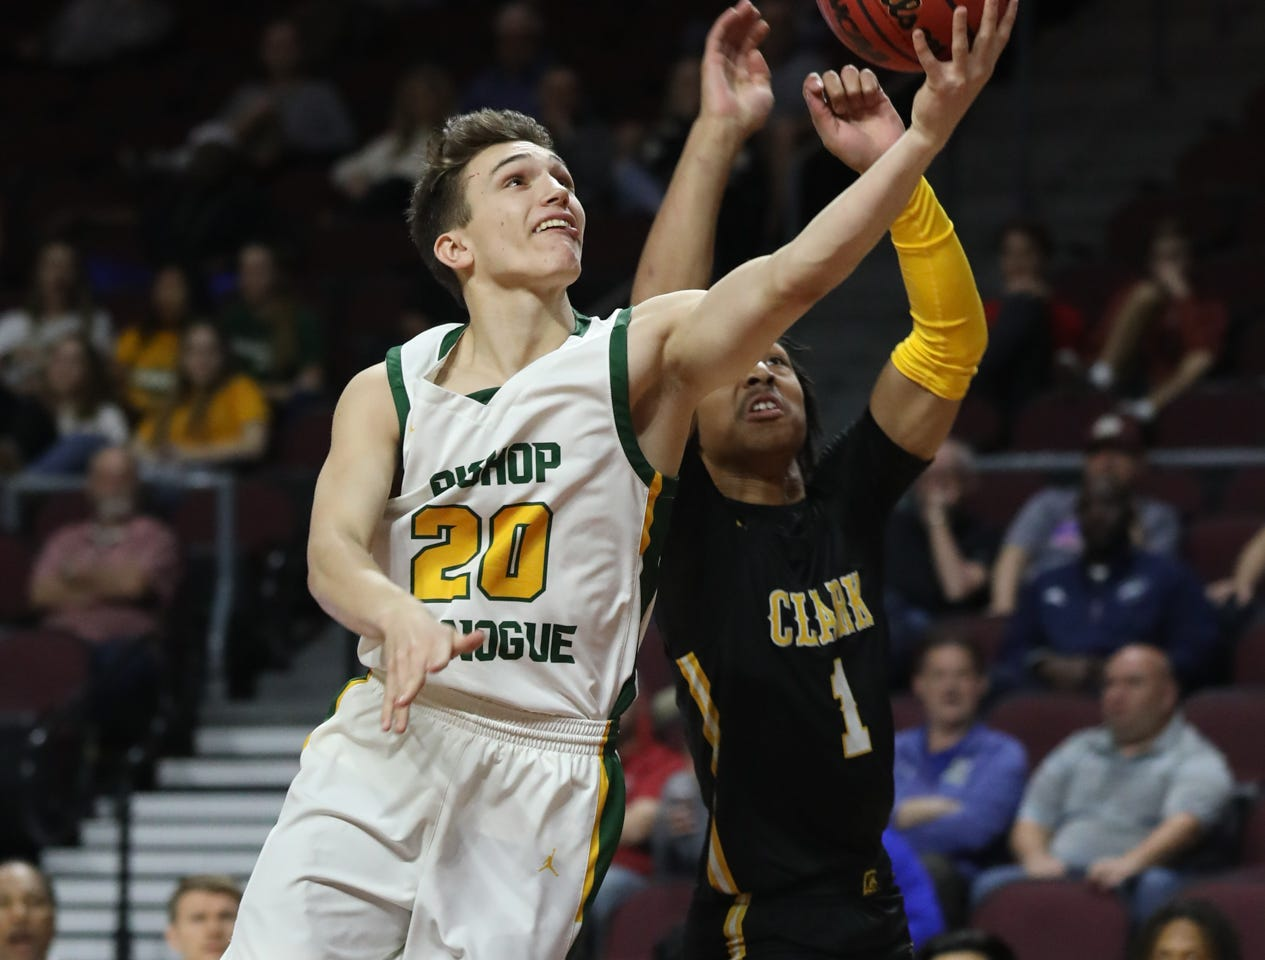 Bishop Manogue's Cort Ballinger lays up the ball against Clark in the first quarter of Thursday's 4A state semifinal game at the Orleans Arena.